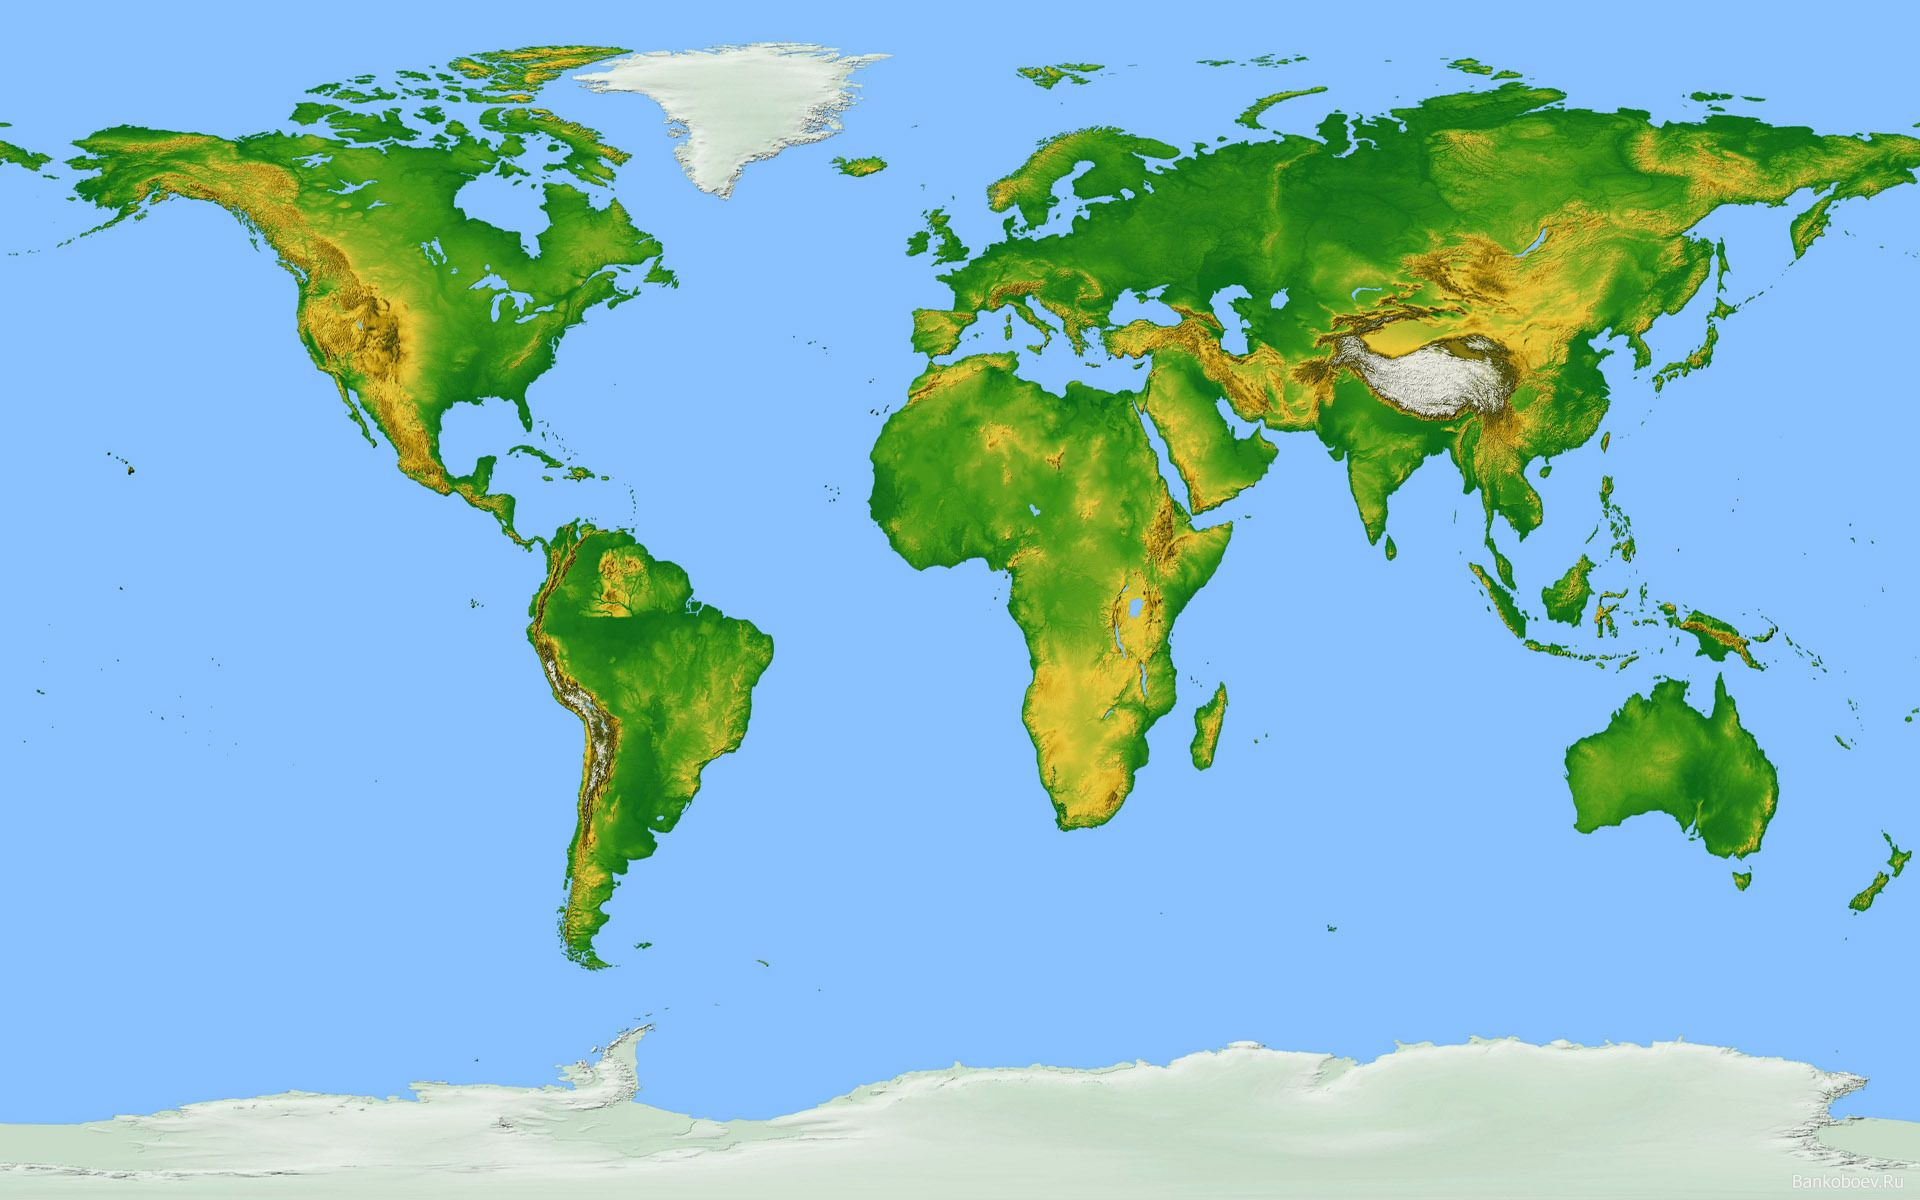 Geographic world map wallpaper download geographic world map geographic world map wallpaper download geographic world map wallpaper maps free online gumiabroncs Images